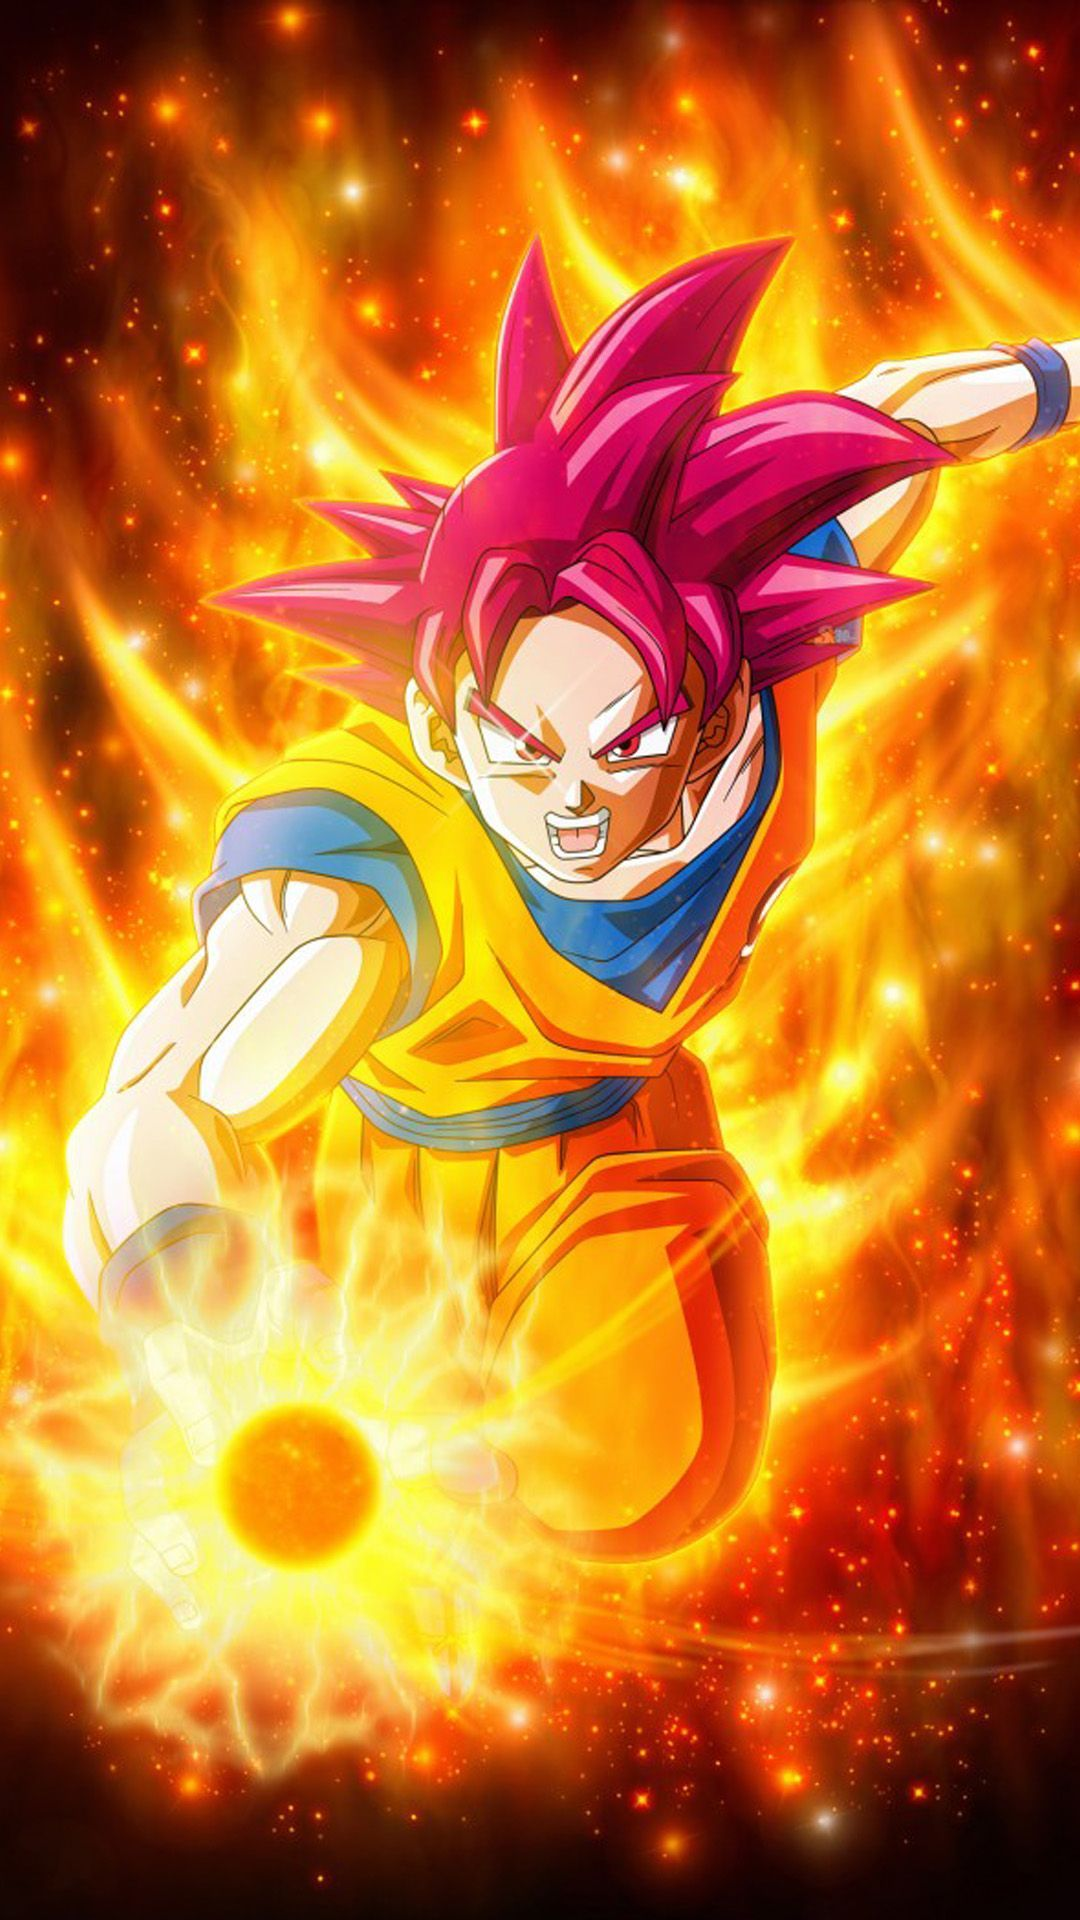 Download Super Saiyan God In Dragon Ball Super Free Pure 4k Ultra Hd Mobile Wallpaper In 2020 Anime Dragon Ball Super Goku Super Saiyan God Dragon Ball Super Manga